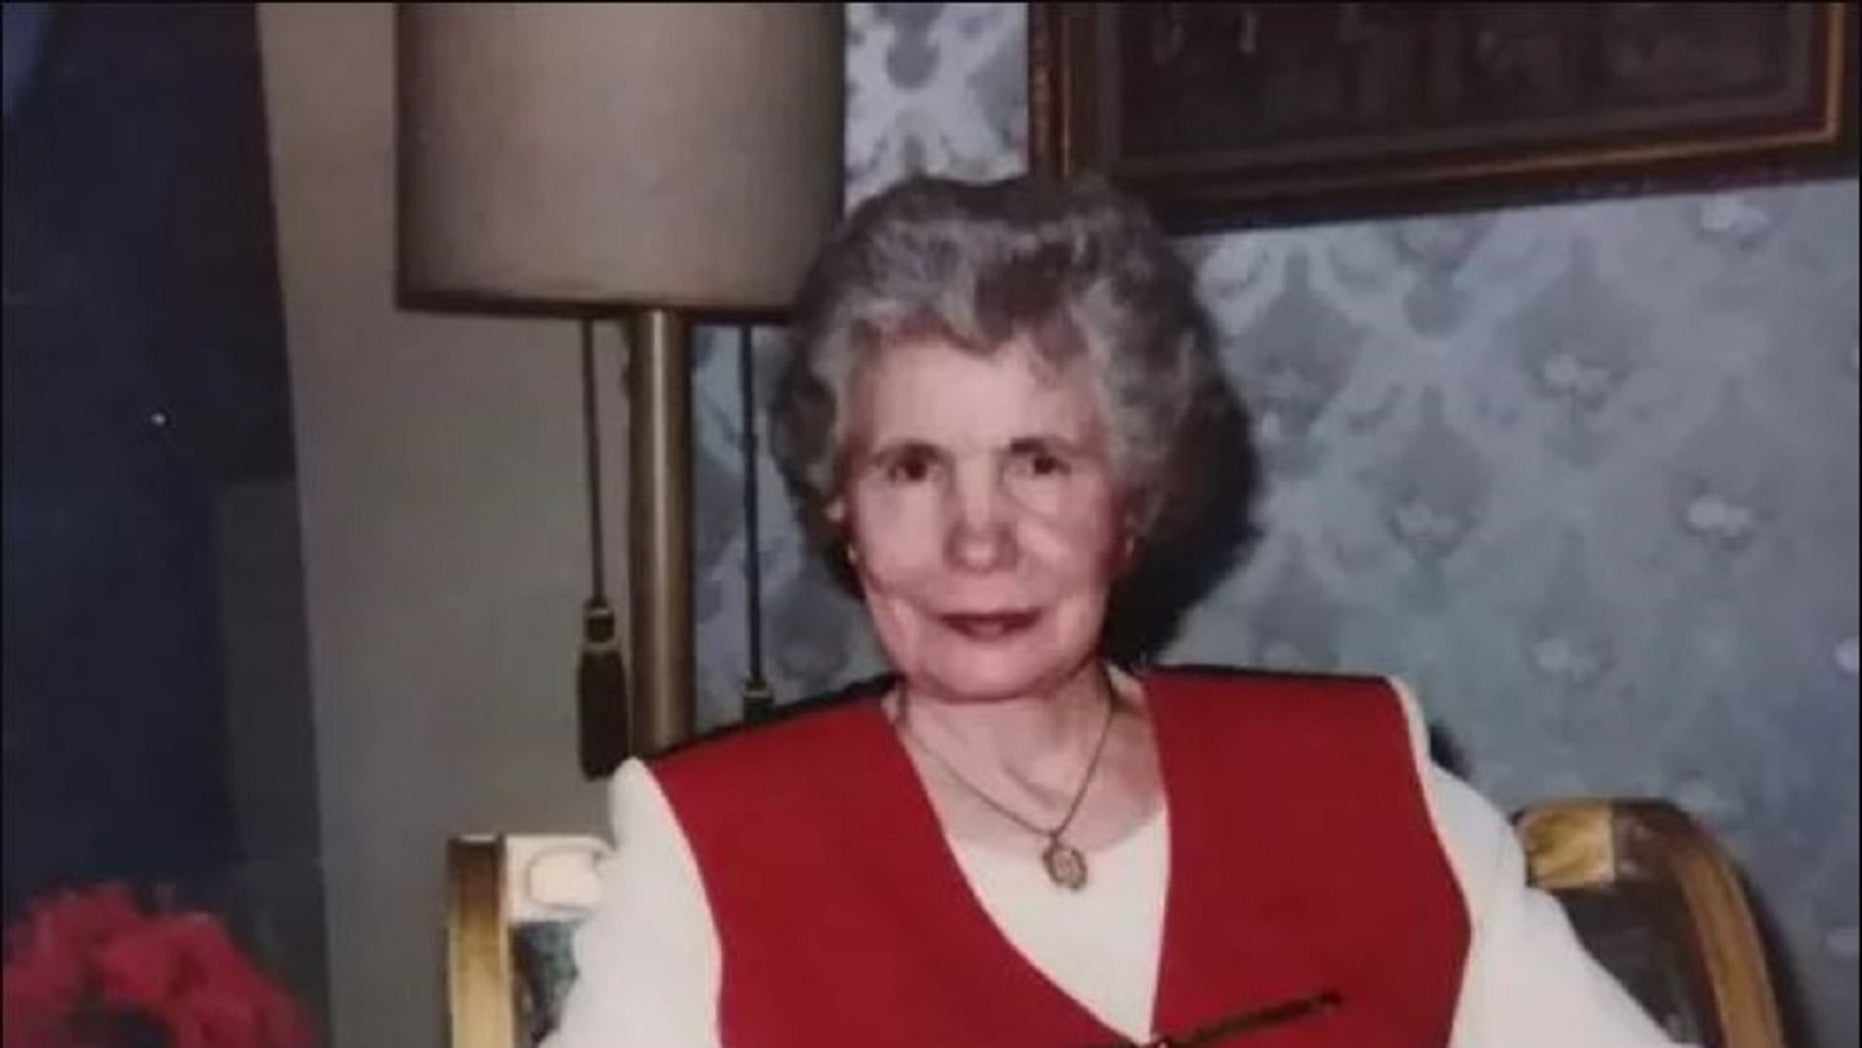 Nancy Jo Roberts' body has been held in an Ohio mortuary for more than a year.